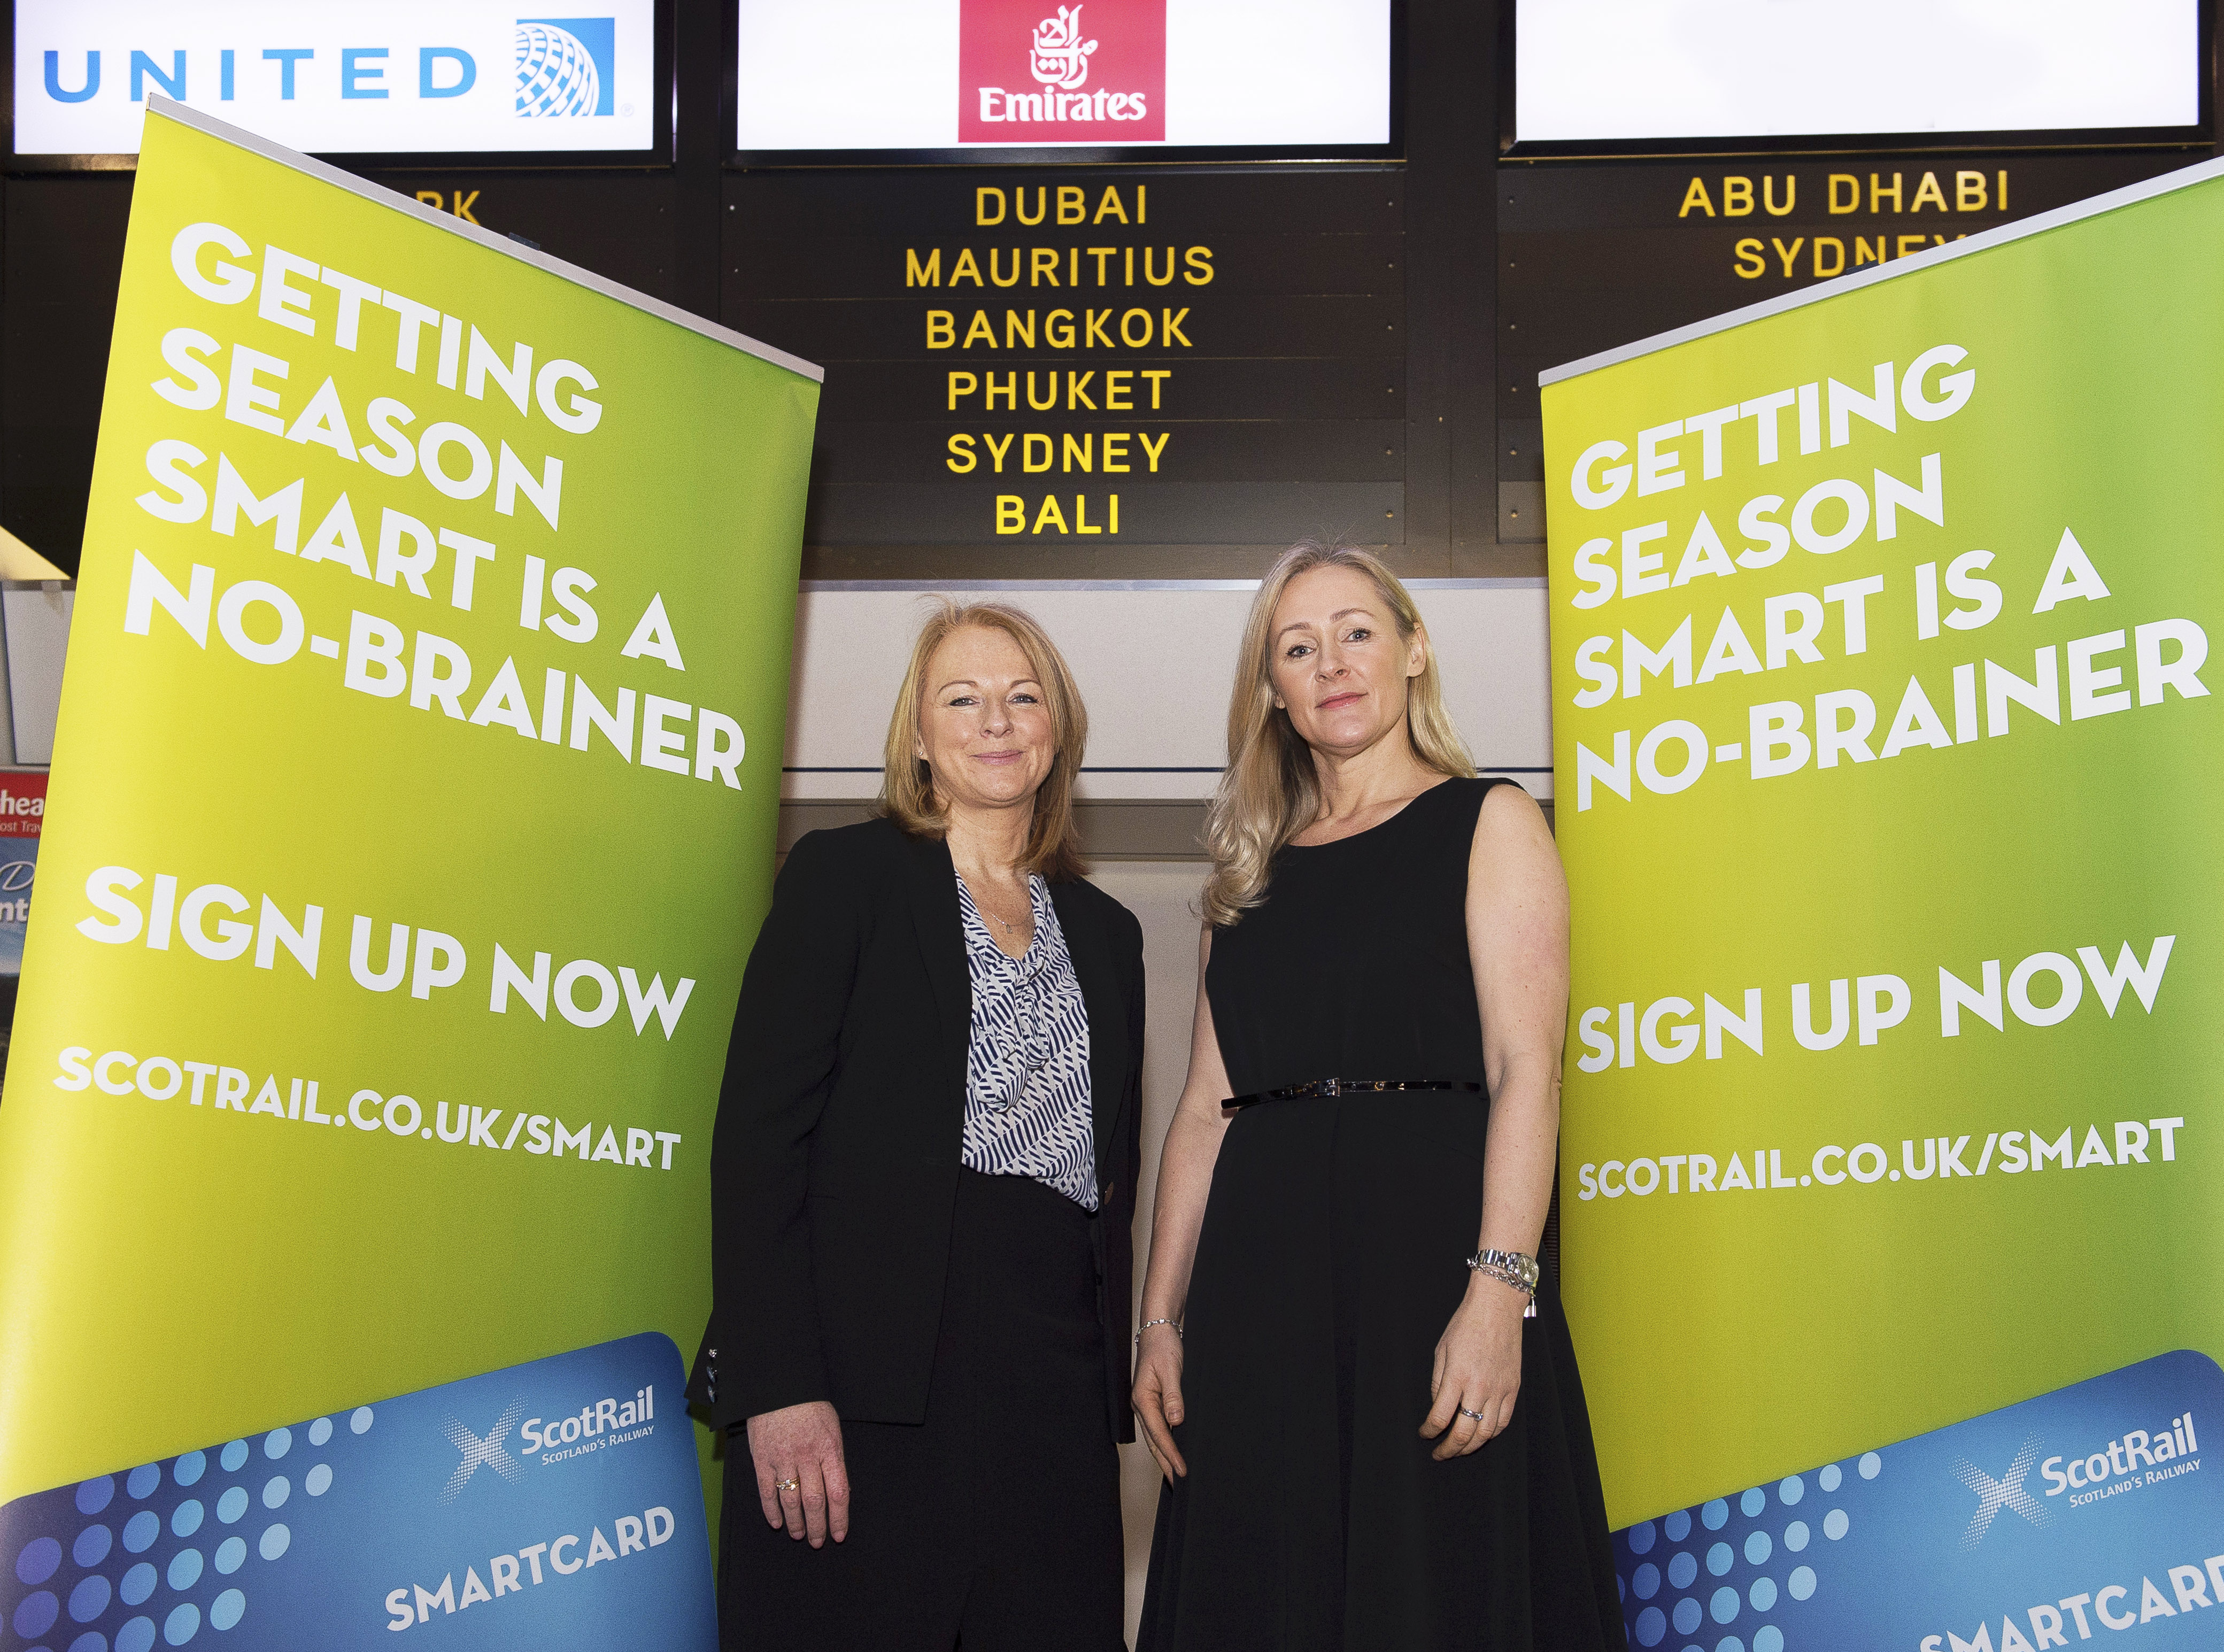 09/02/17 - 17020903 - ABELLIO SCOTRAIL    GLASGOW    Abellio ScotRail's Cathy Craig (L) and Barrhead Travel's Karen Breen at the launch of Abellio ScotRail's SmartCard Benefits Package.